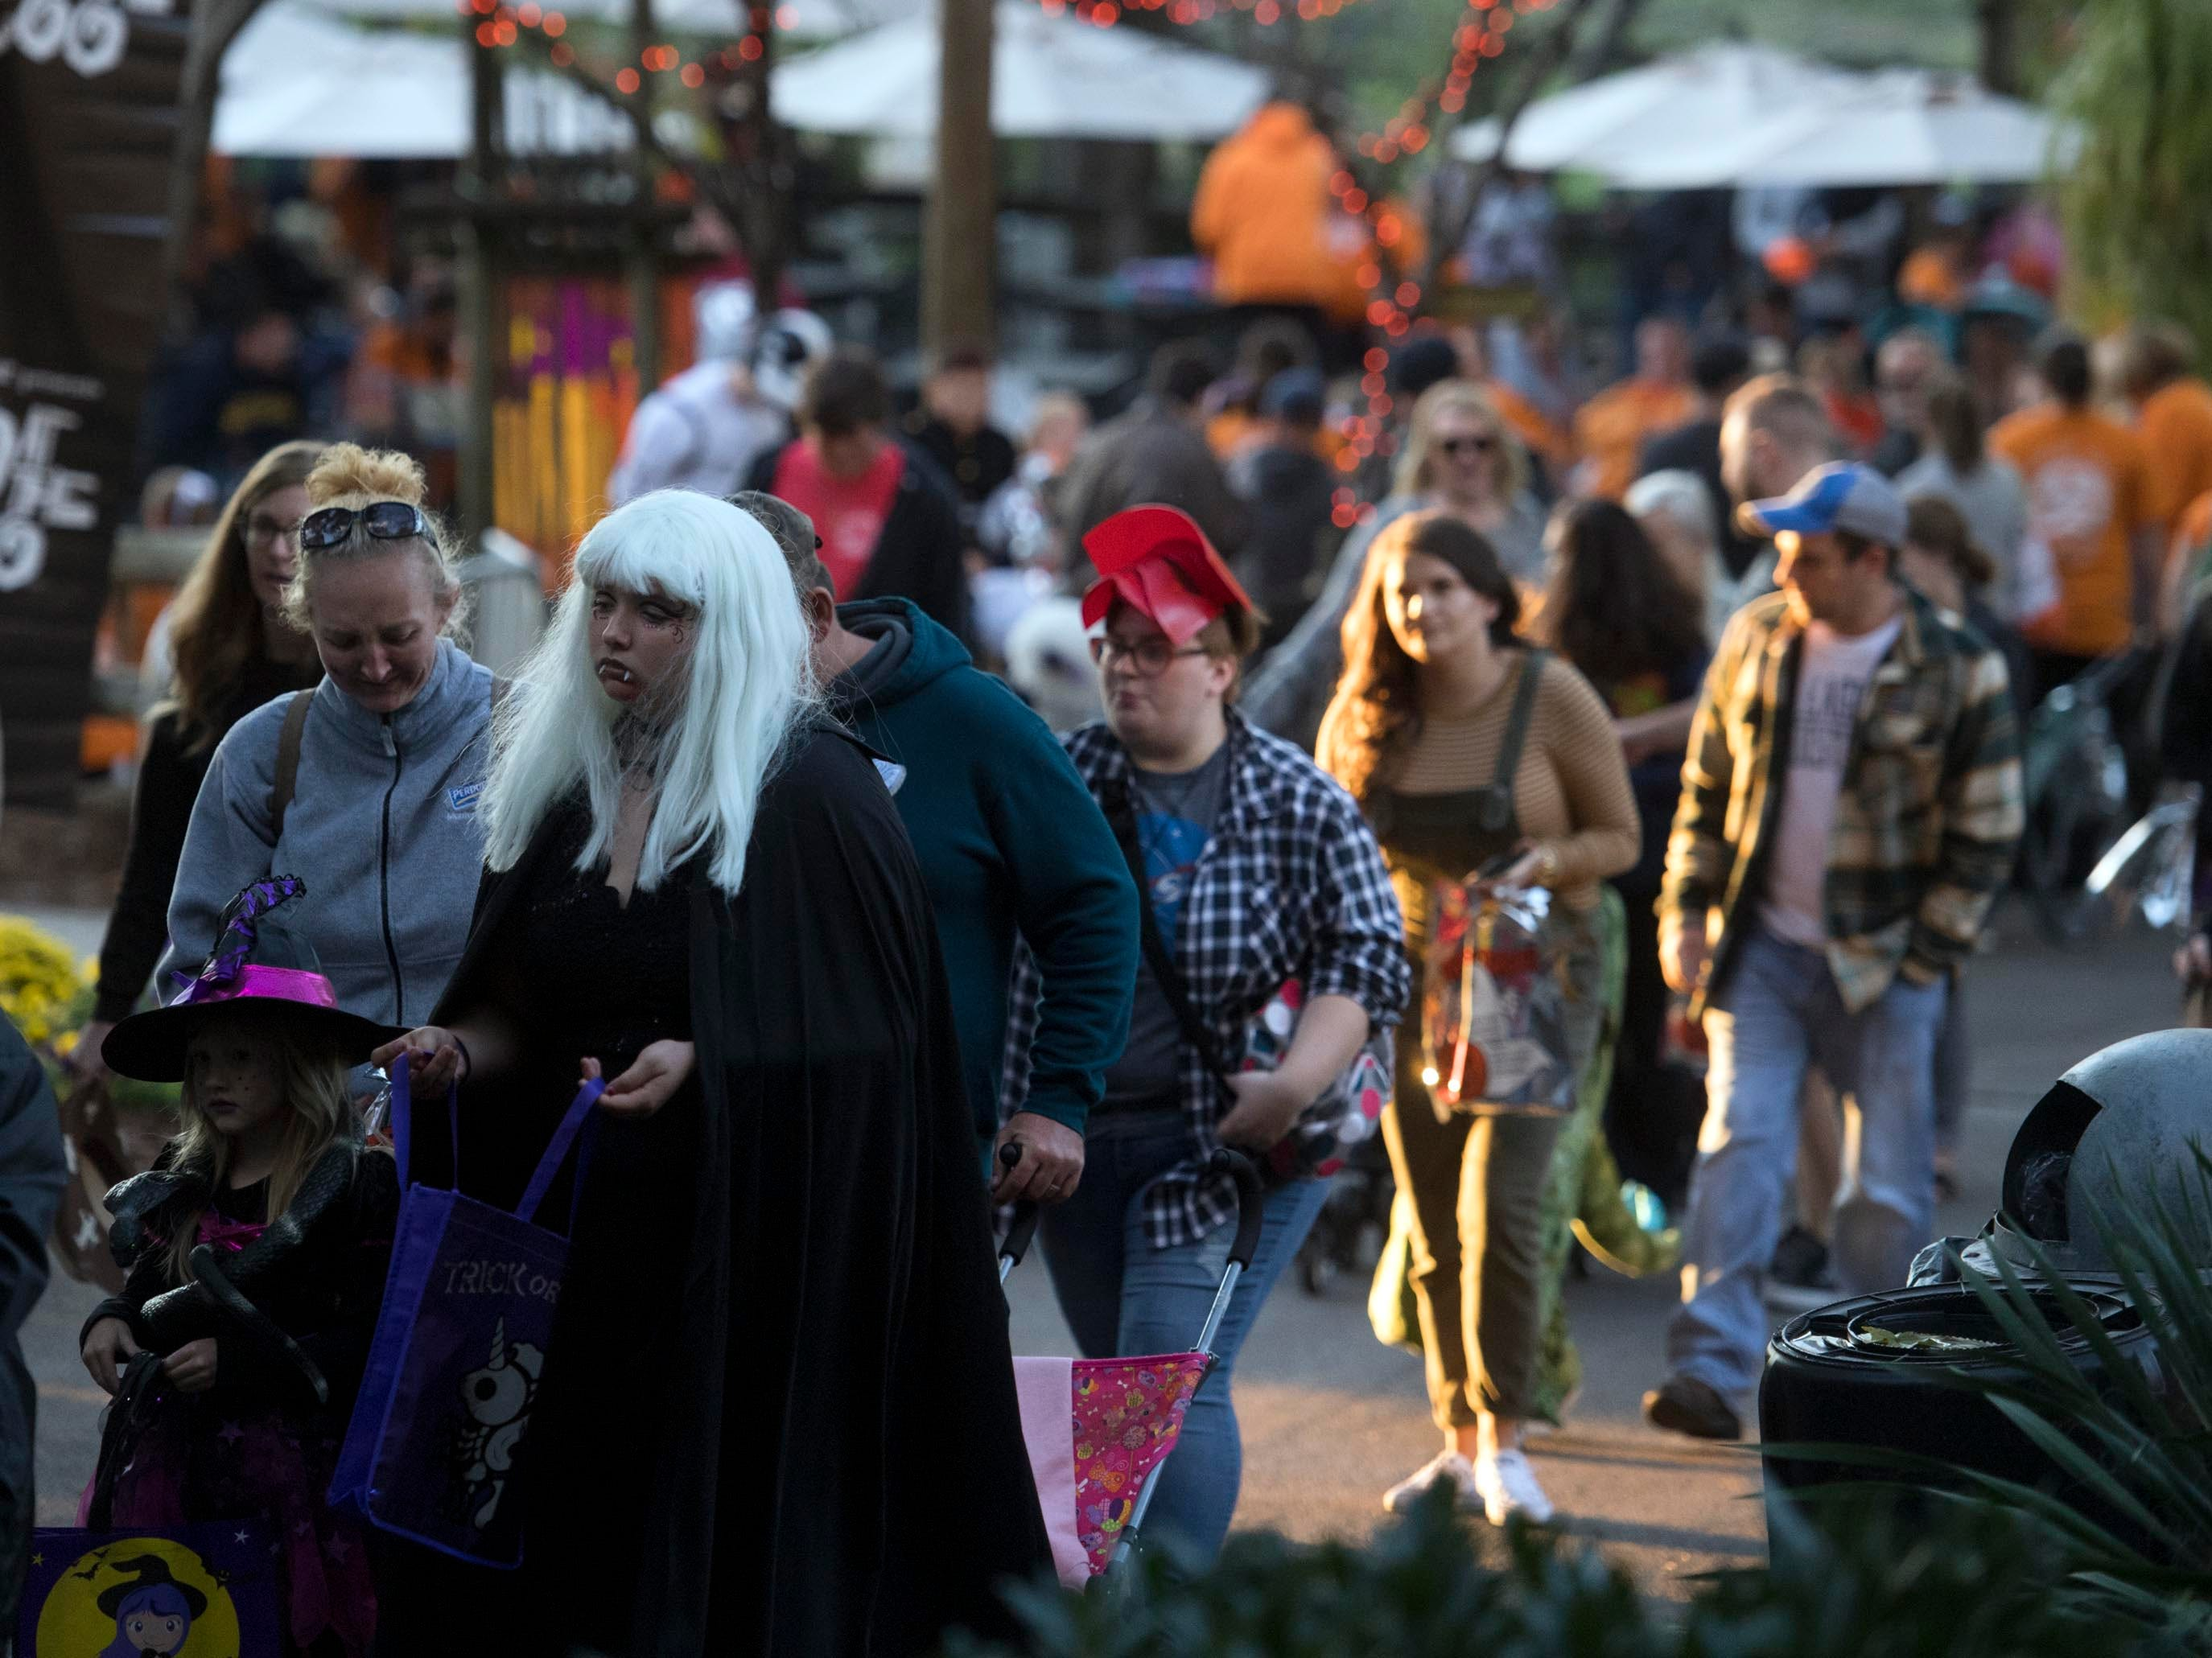 Zoo Knoxville's Boo! at the Zoo on Saturday, October 20, 2018.